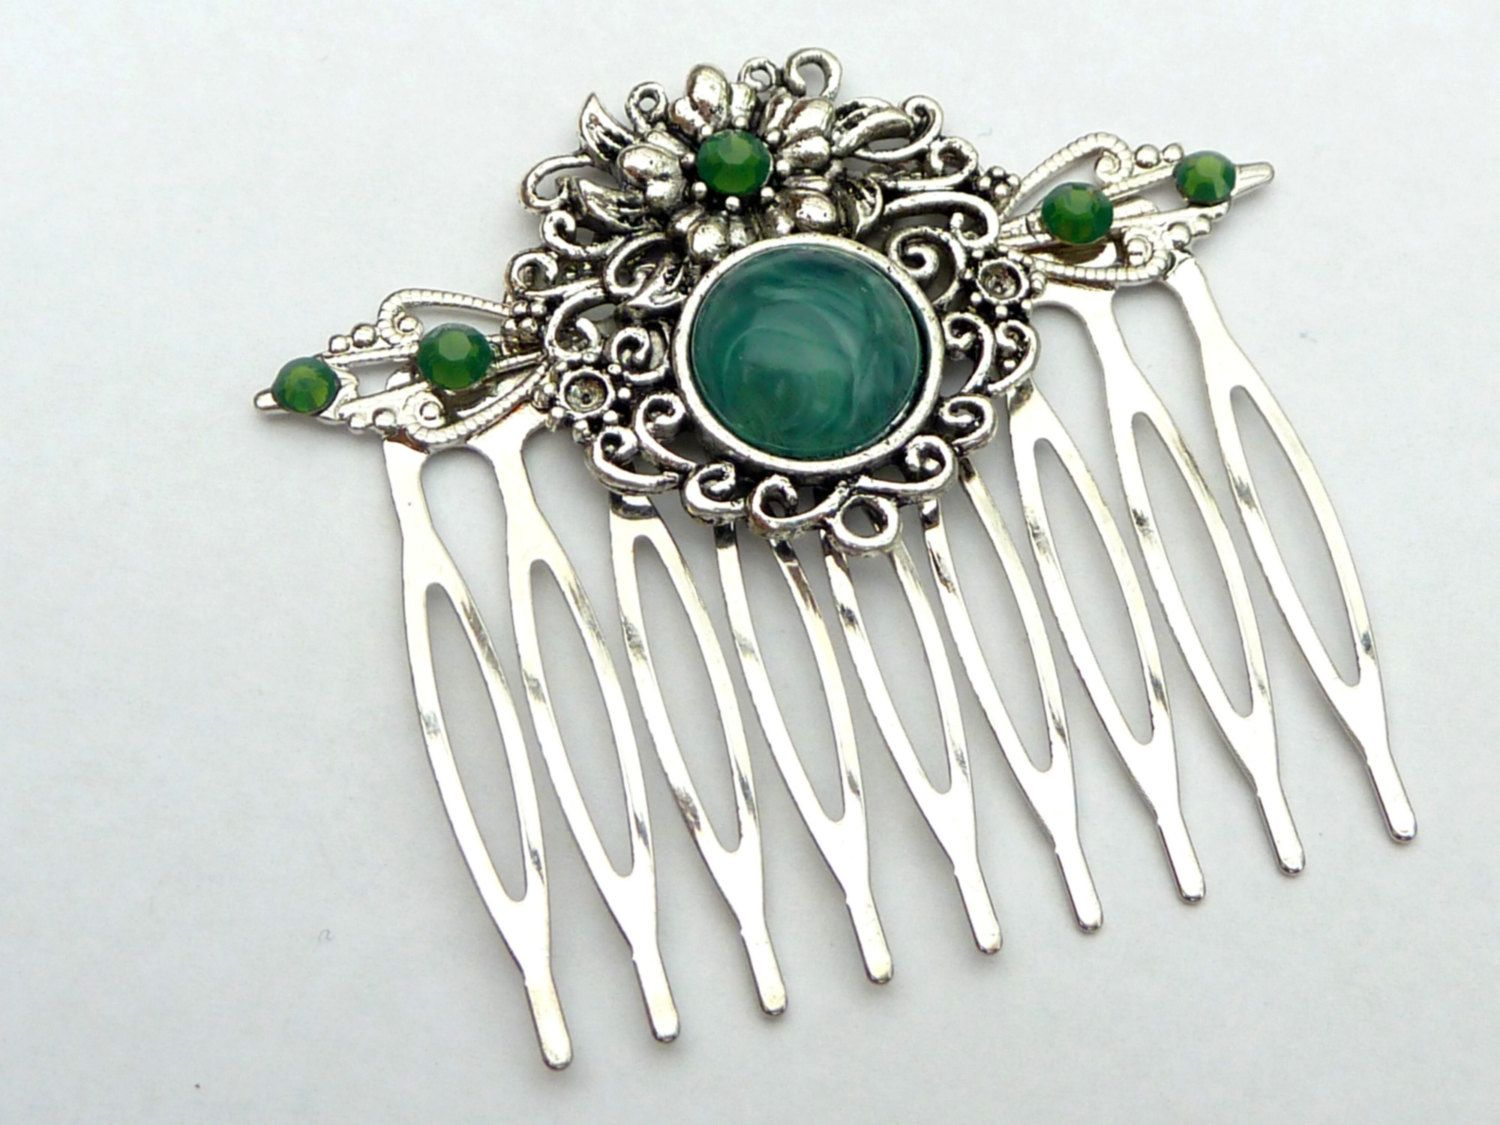 Elegant hair comb in green silver with a beautiful ornament, antique hair comb, festive hair accessories, bridal hair comb, updo hair comb - pinned by pin4etsy.com